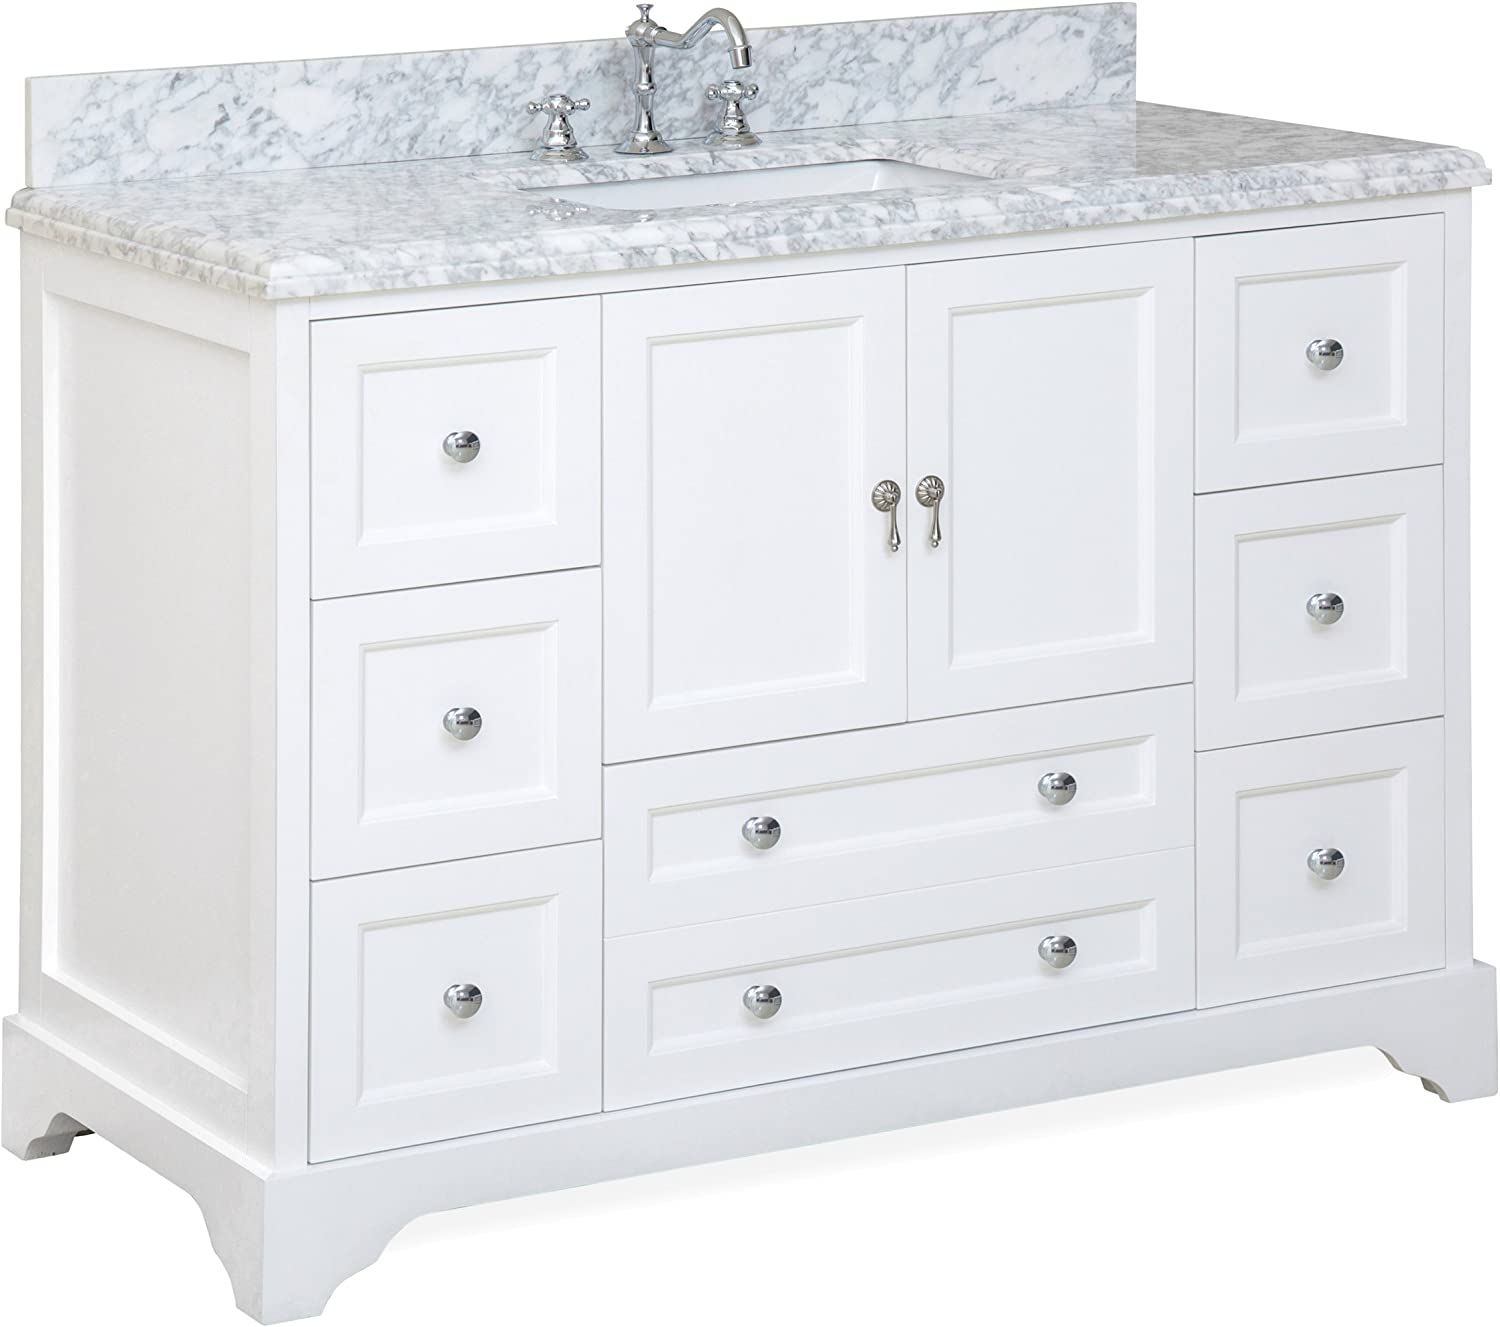 Madison 48-inch Bathroom Vanity Carrara White Includes Italian Carrara Marble Top, White Cabinet with Soft Close Drawers Doors, and Rectangular Ceramic Sink